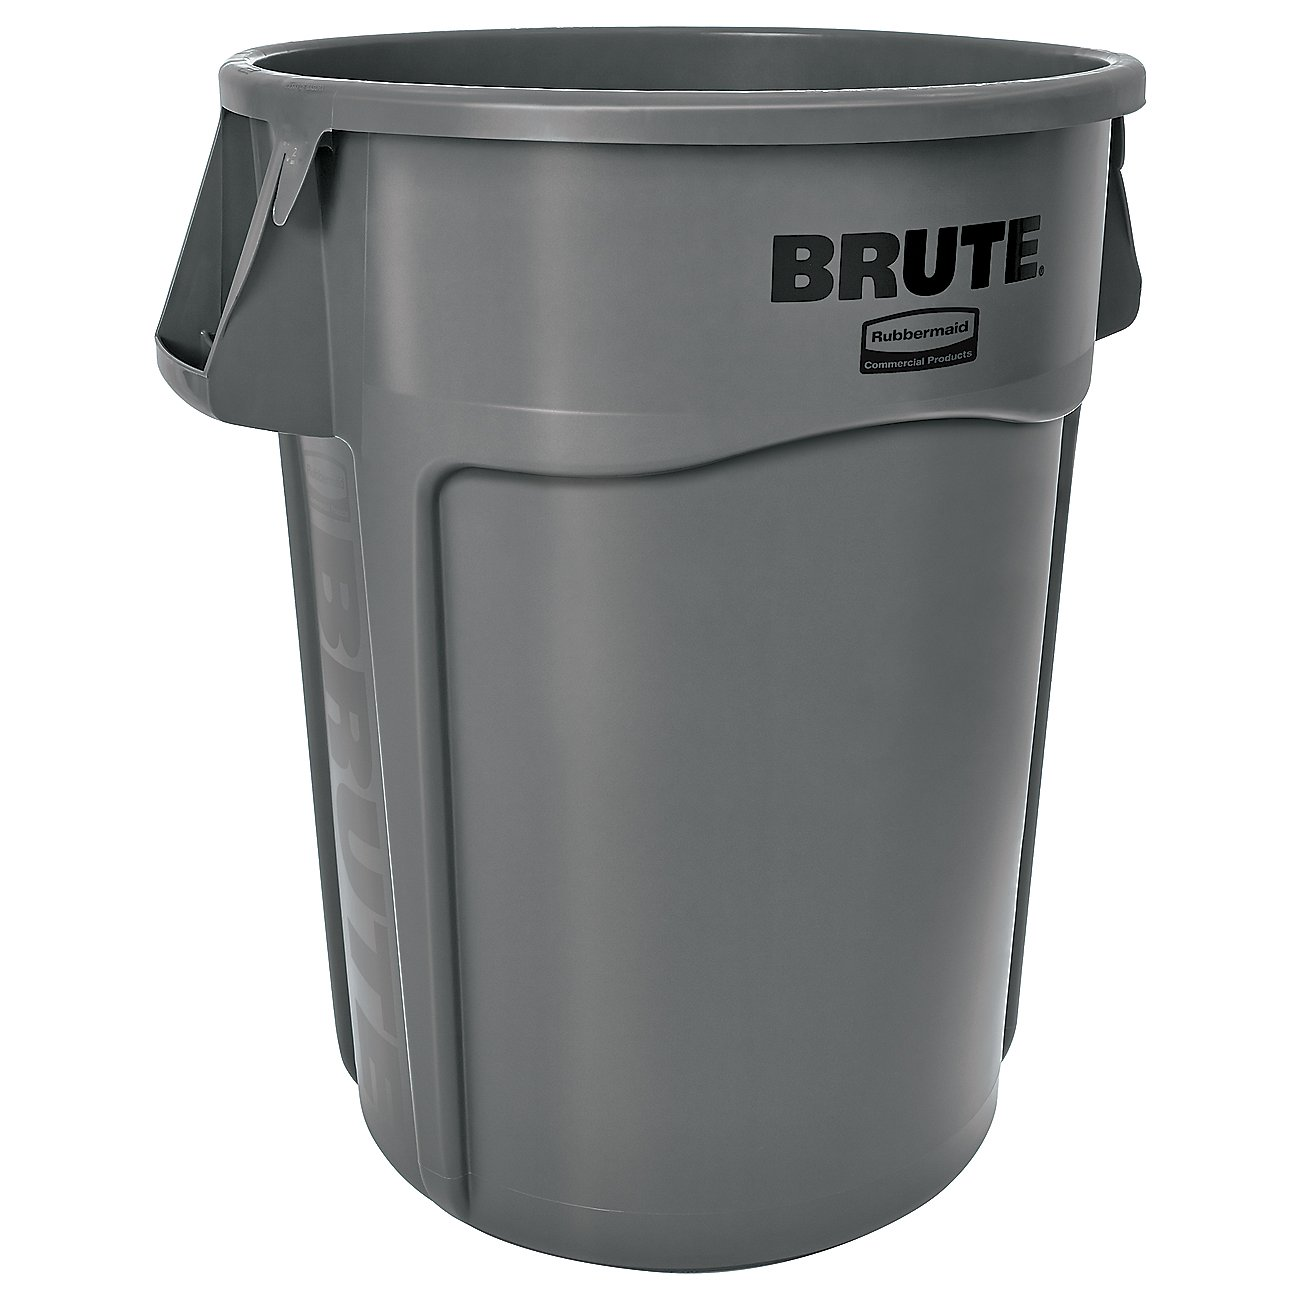 Rubbermaid Offers BRUTE Containers